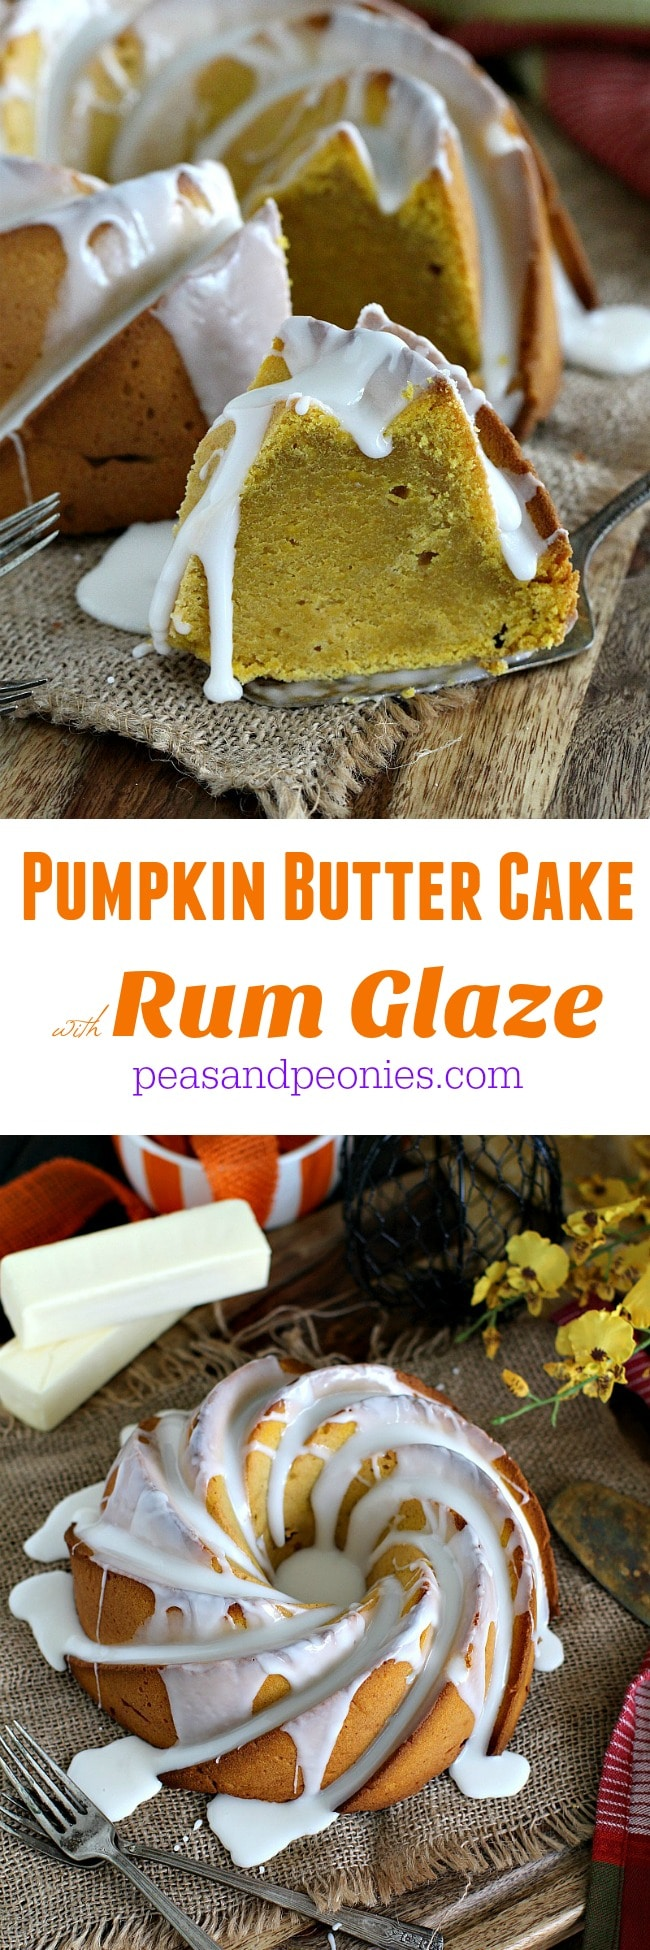 Easy to make, luxurious, rich and moist, one bowl Pumpkin Butter Cake is absolutely divine covered in a boozy and sweet rum glaze.